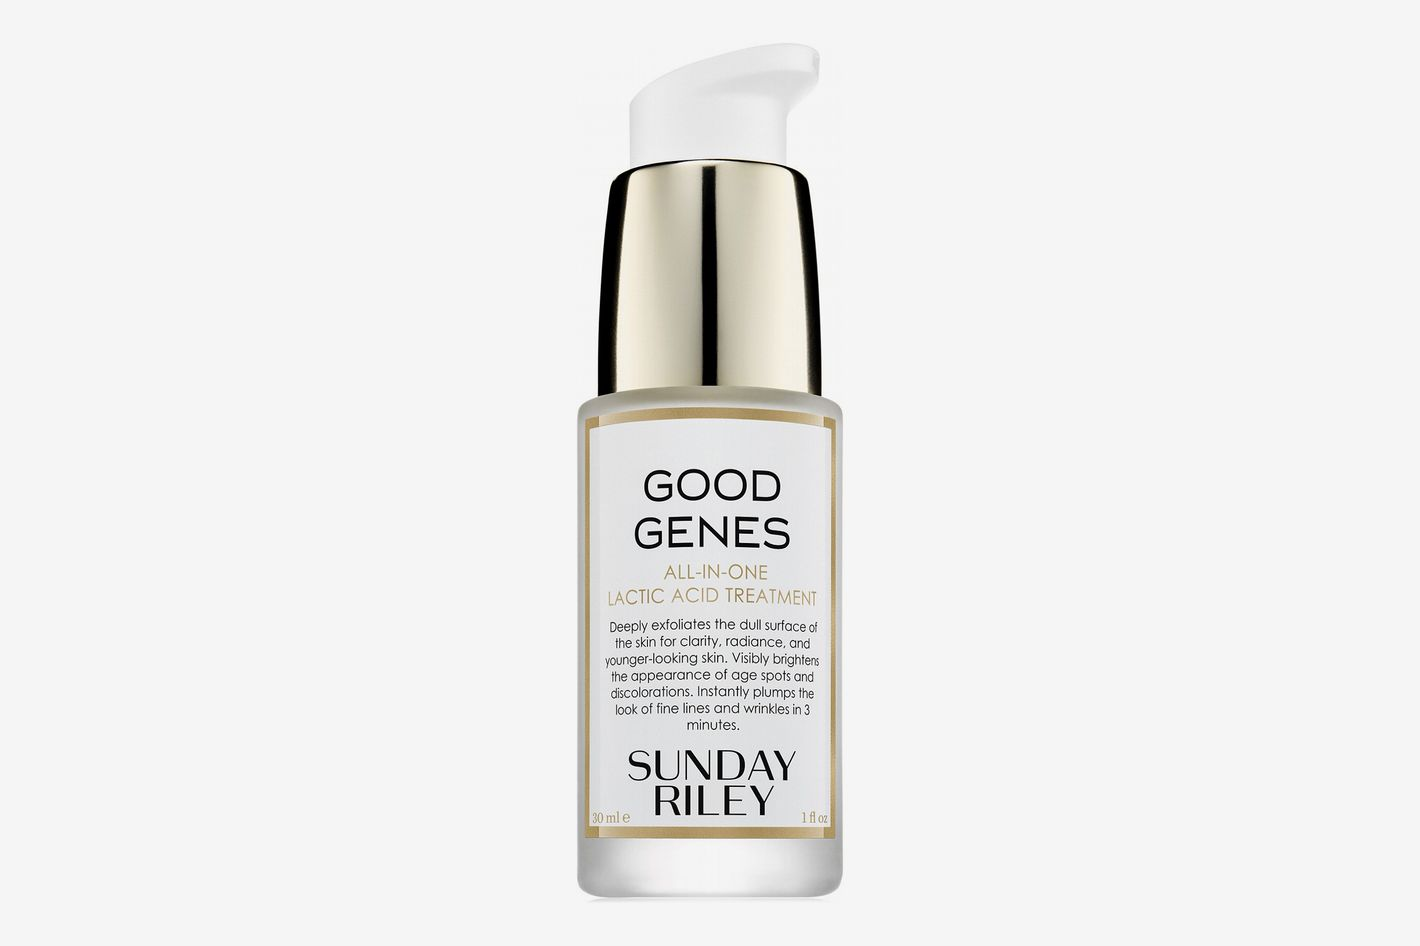 8fc7fb5db45f Sunday Riley Good Genes All-In-One Lactic Acid Treatment, 1 fl.